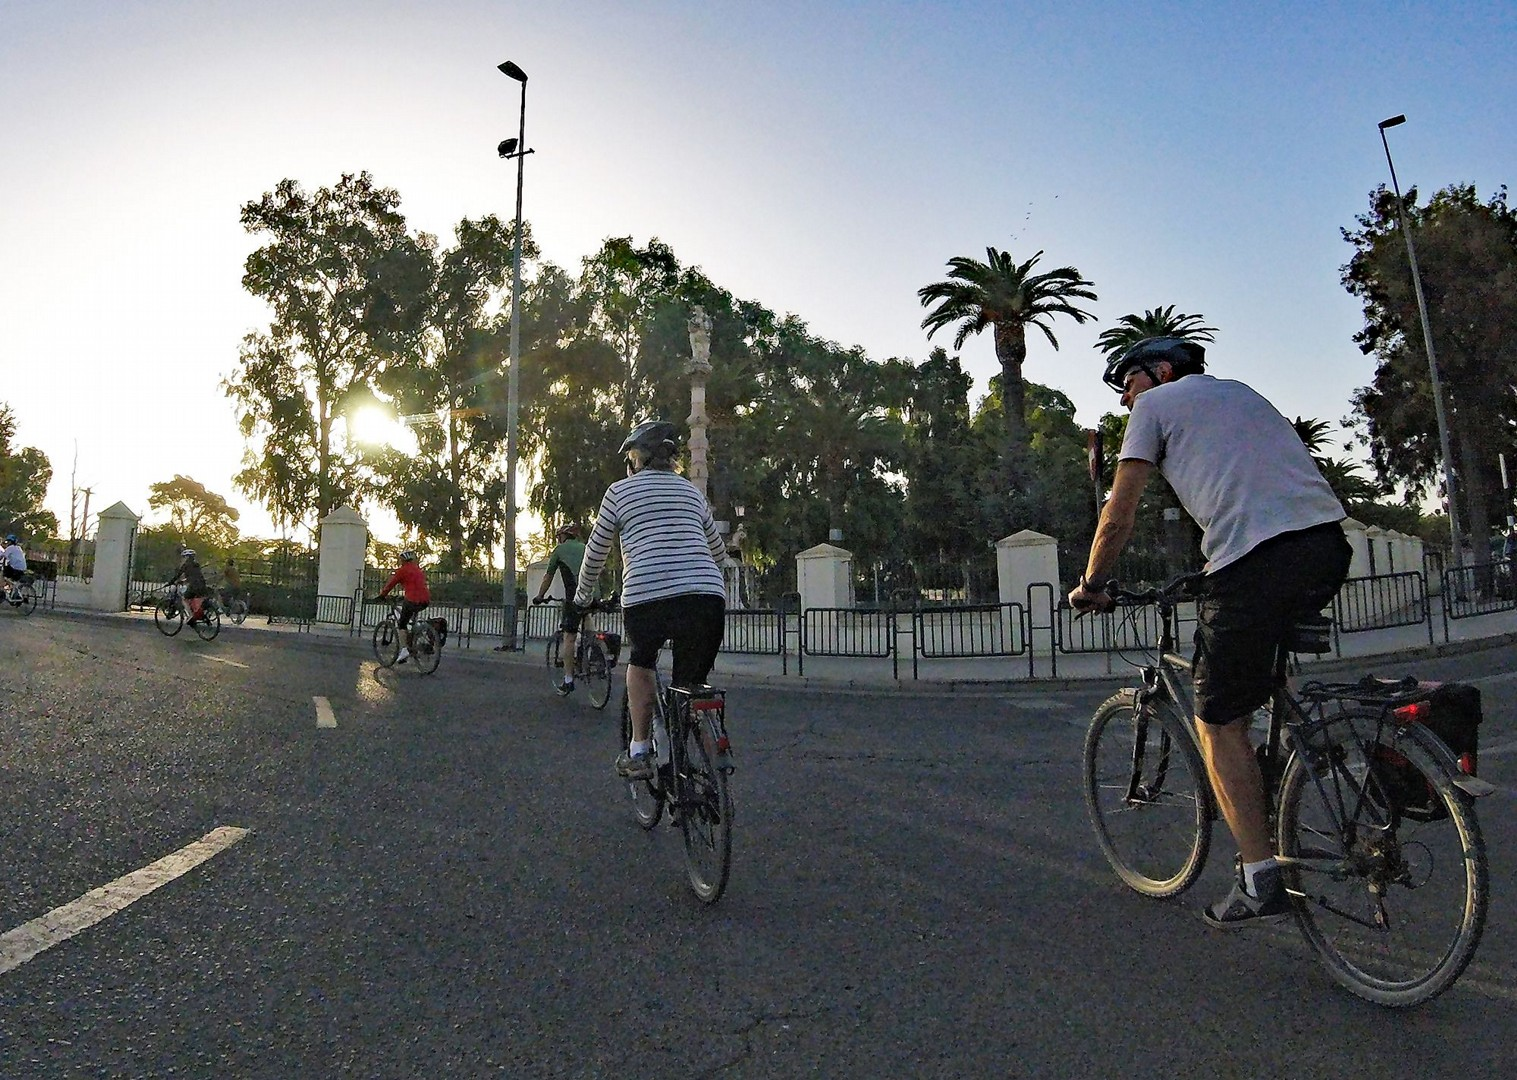 andalucia-granada-to-seville-guided-leisure-cycling-holiday-in-spain.jpg - Southern Spain - Granada to Seville - Guided Leisure Cycling Holiday - Leisure Cycling